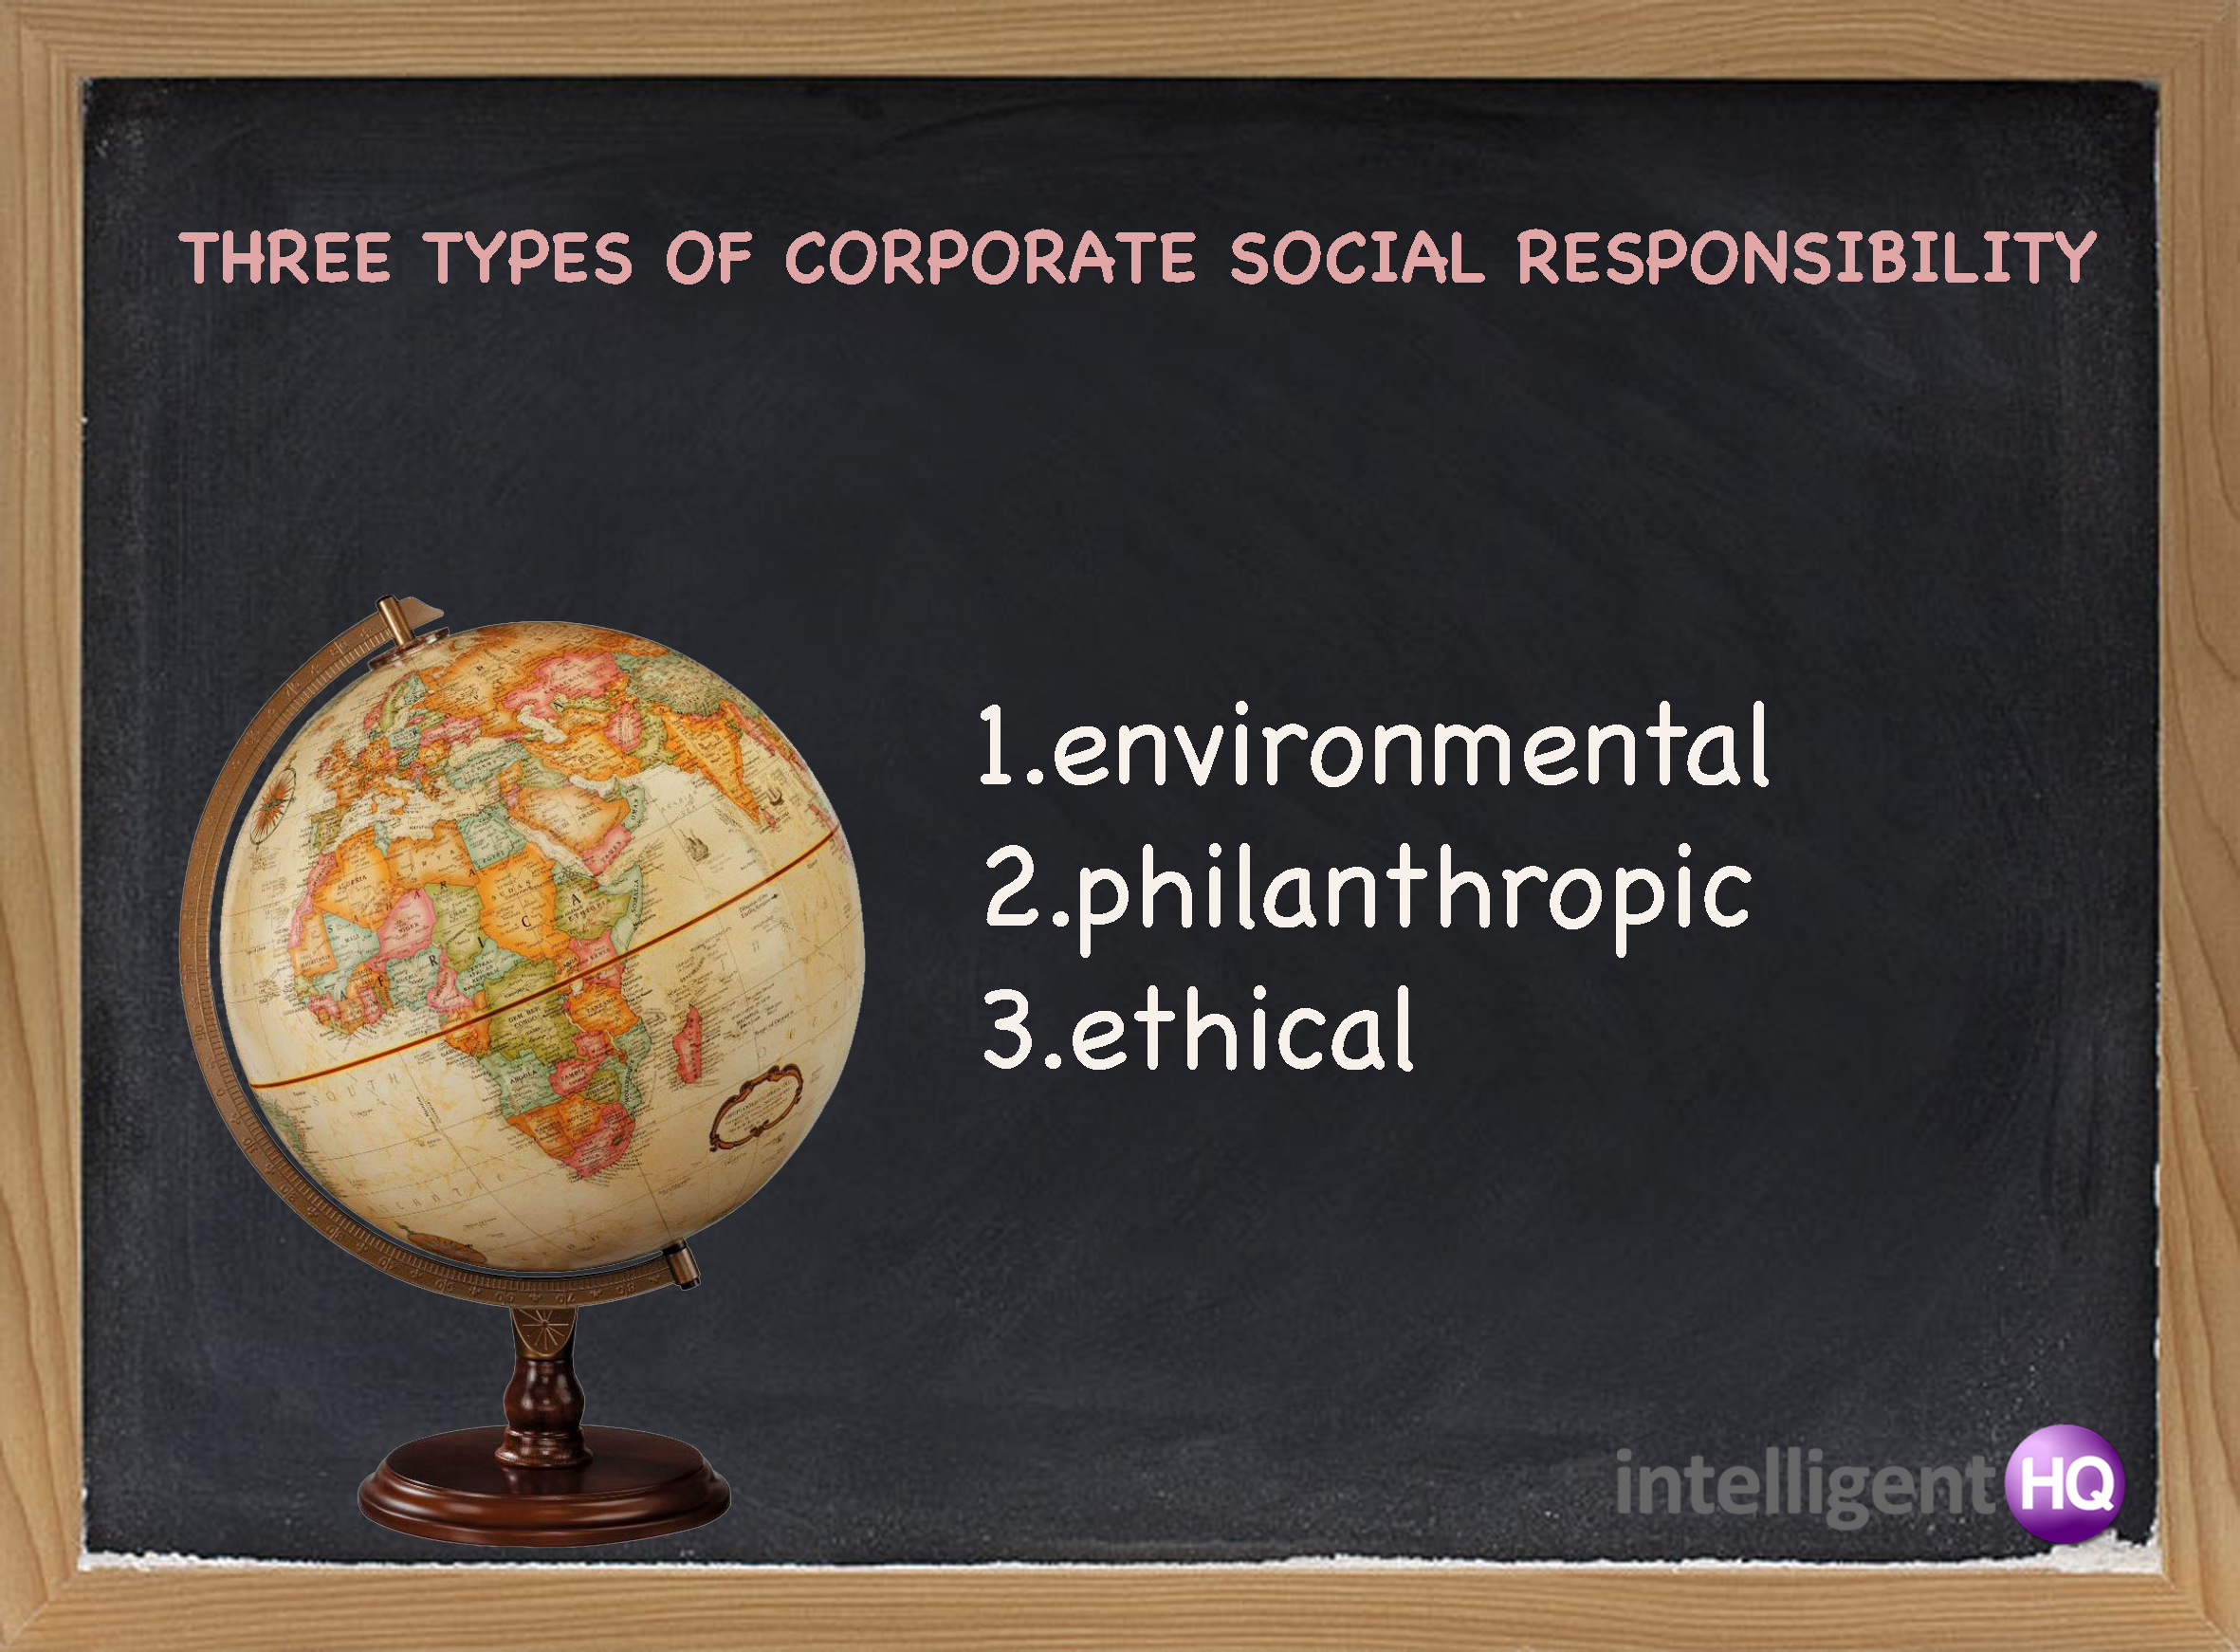 types of csr guide to corporate social responsibility part  three types of corporate social responsibility intelligenthq